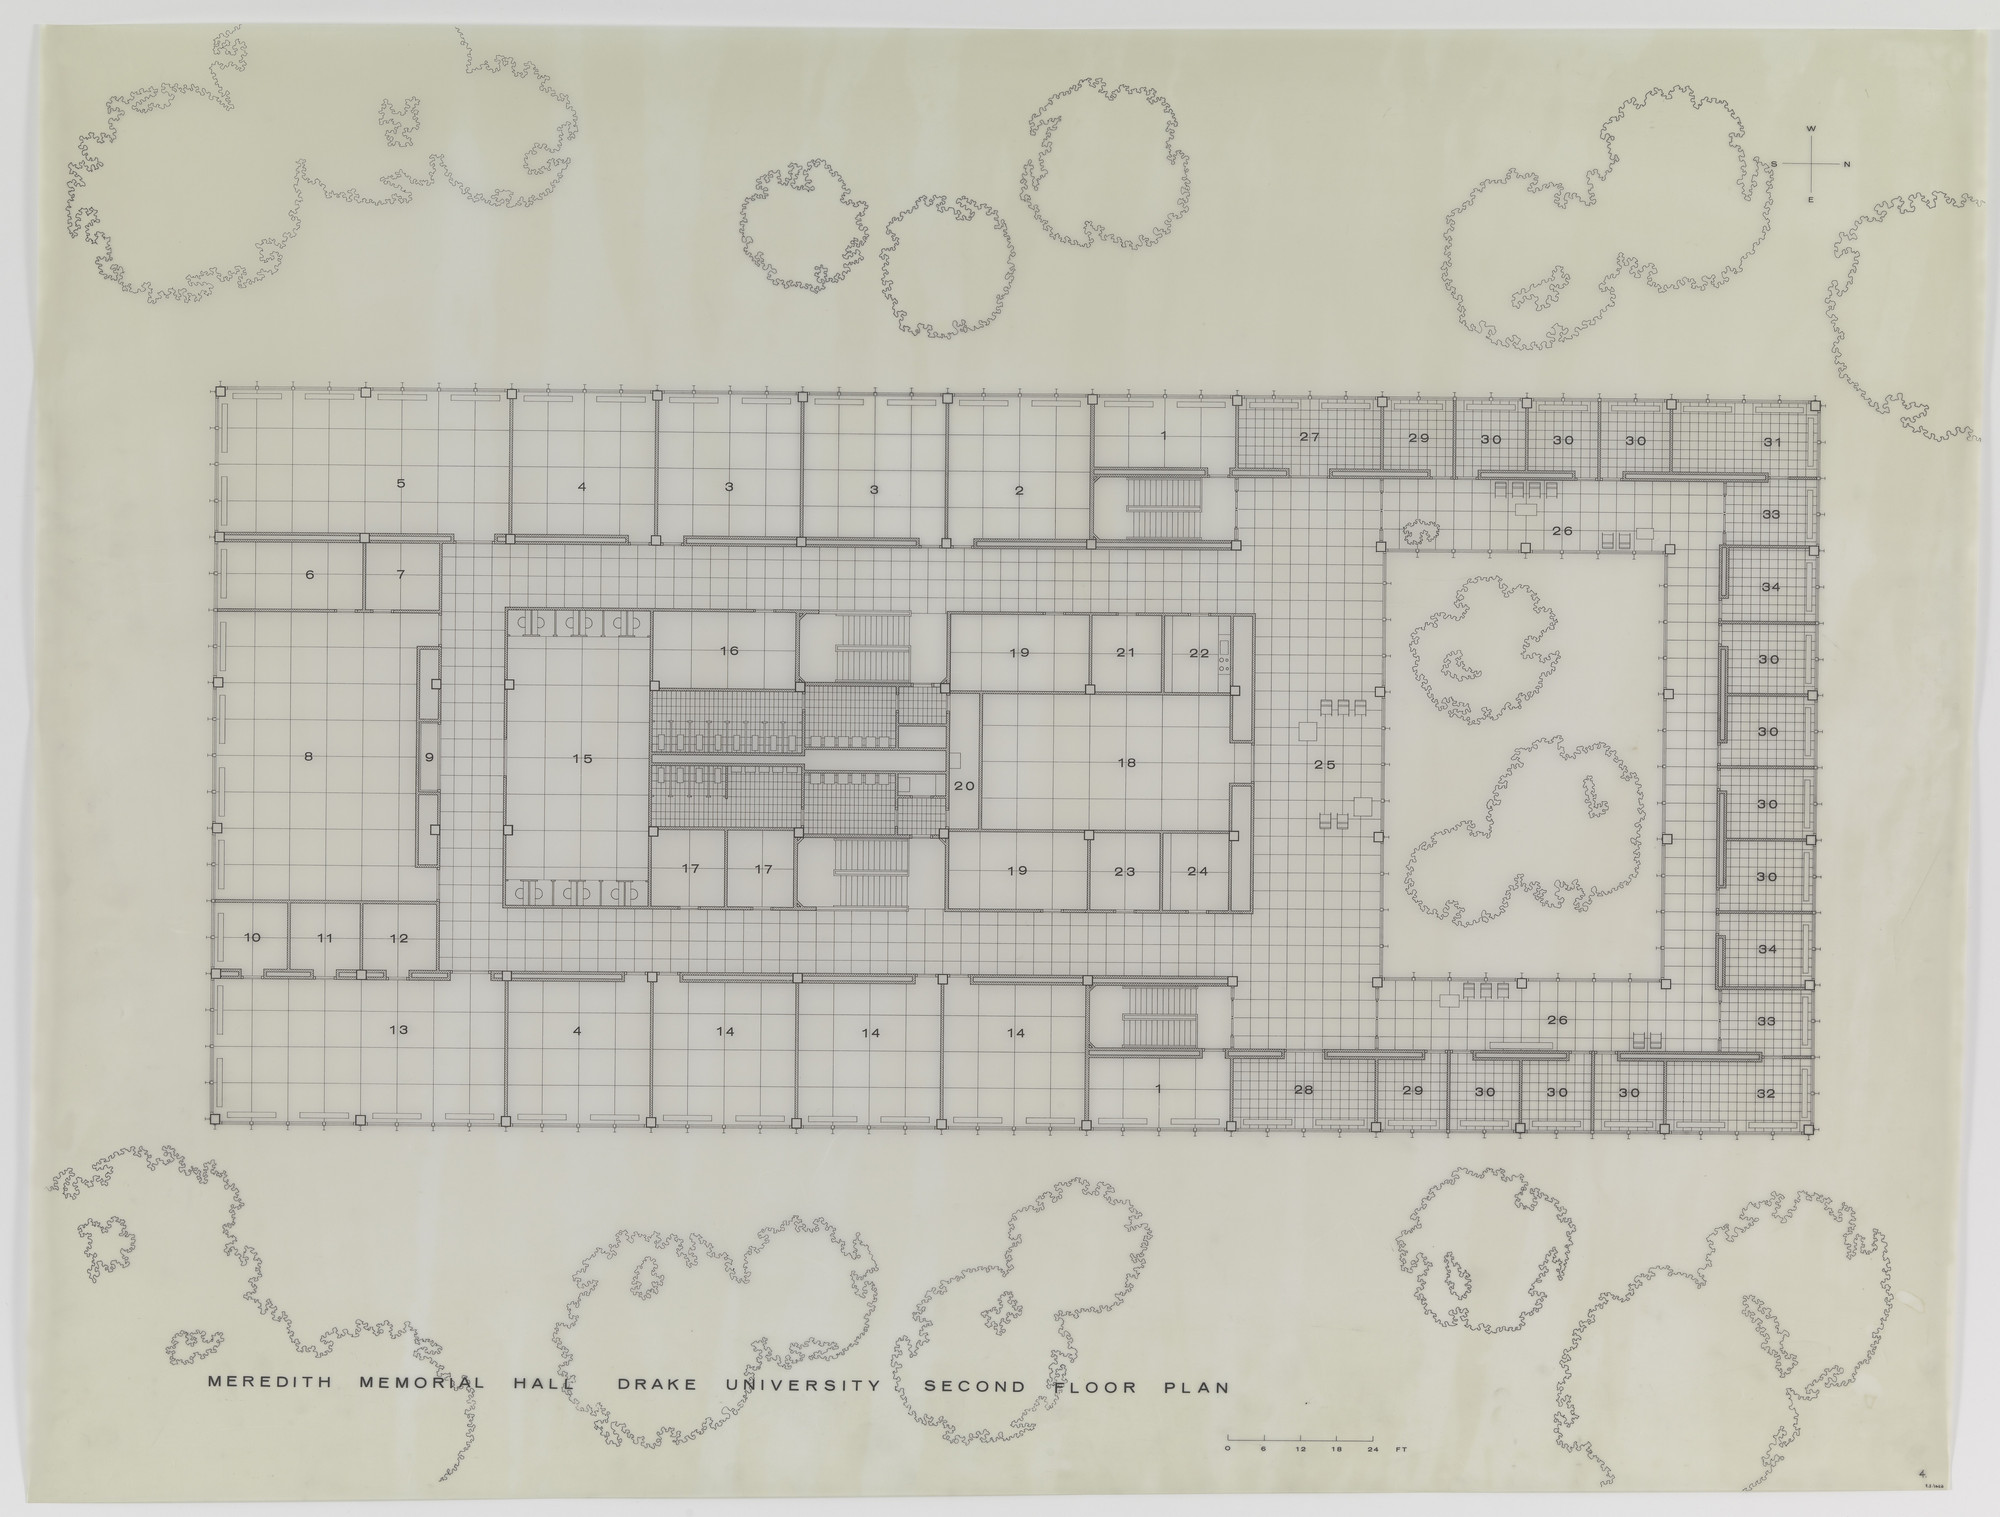 Ludwig Mies van der Rohe. Meredith Memorial Hall, Drake University, Des Moines, IA, Second floor plan. 1962–1965